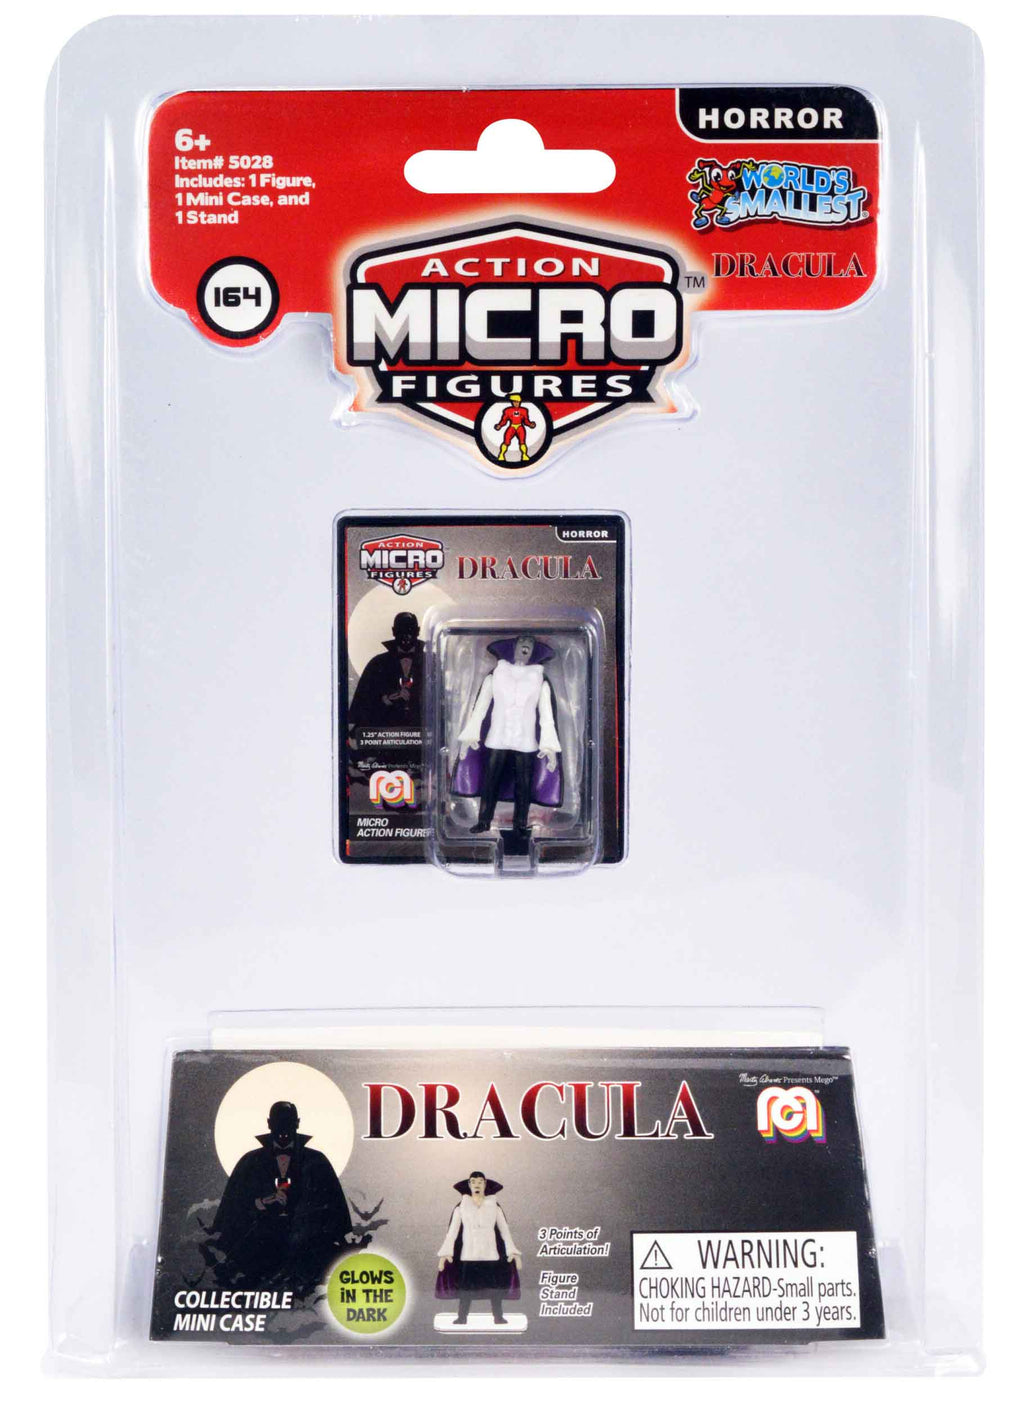 World's Smallest Mego Horror Micro Action Figures – (Dracula)